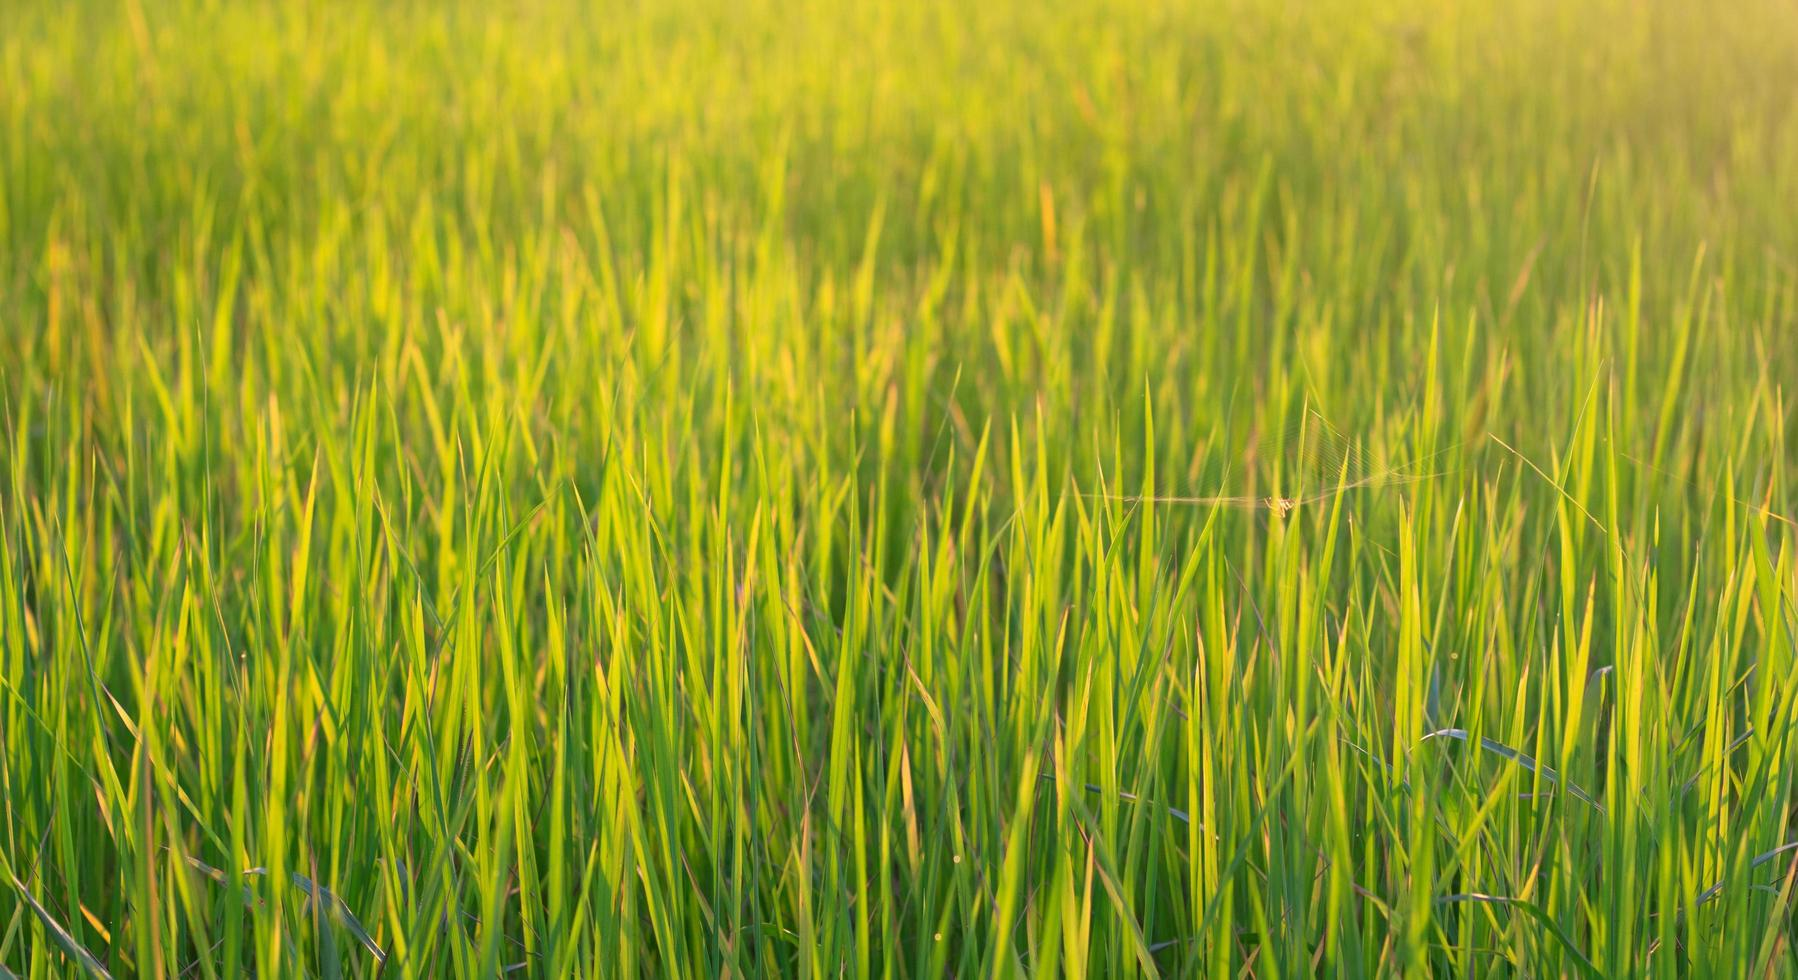 Rice field in the morning with the sun shining through photo